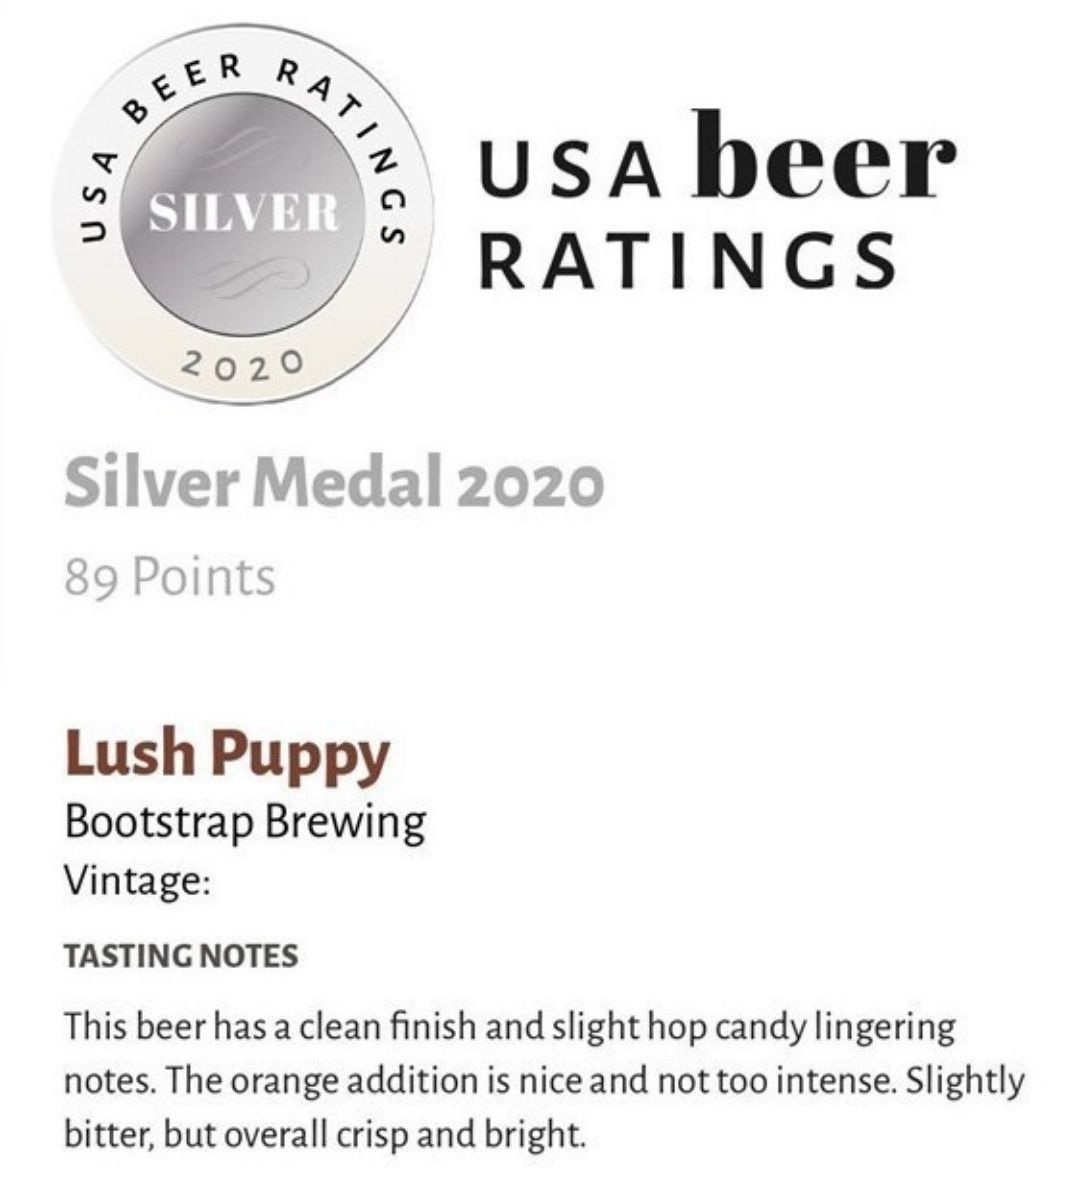 Lush Puppy Silver Medal USA Beer Ratings